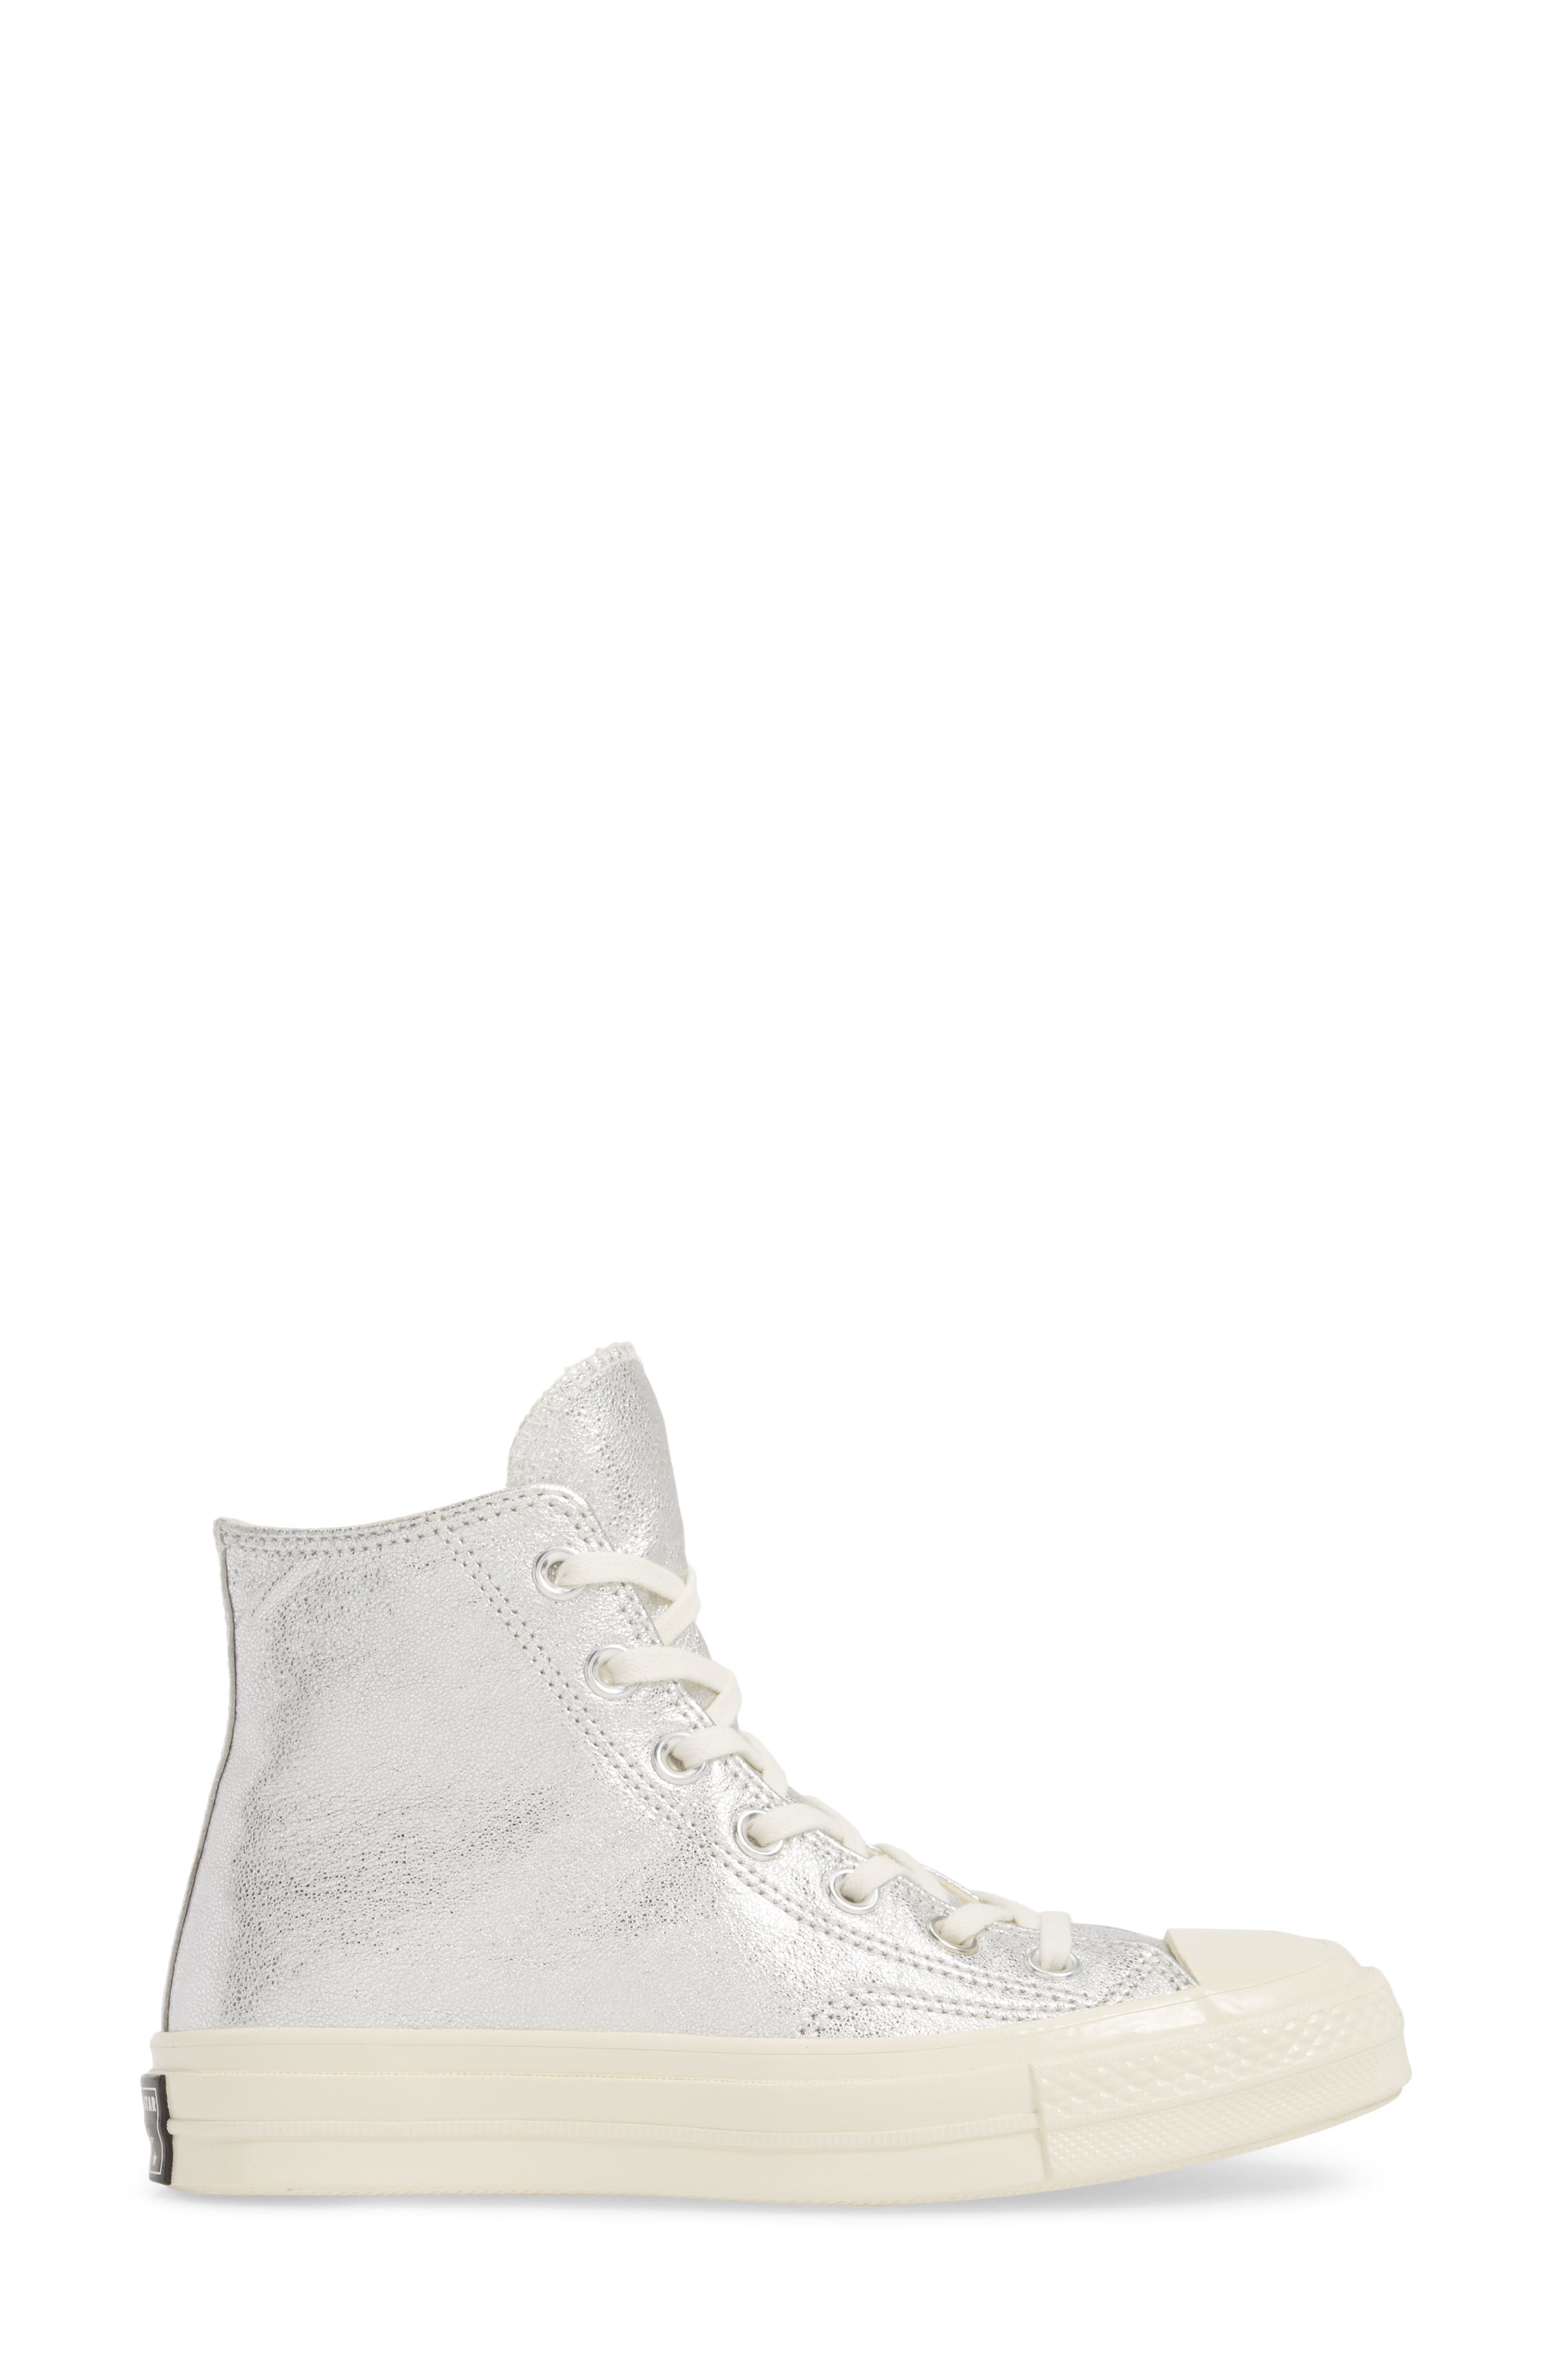 Chuck Taylor<sup>®</sup> All Star<sup>®</sup> Heavy Metal 70 High Top Sneaker,                             Alternate thumbnail 3, color,                             040